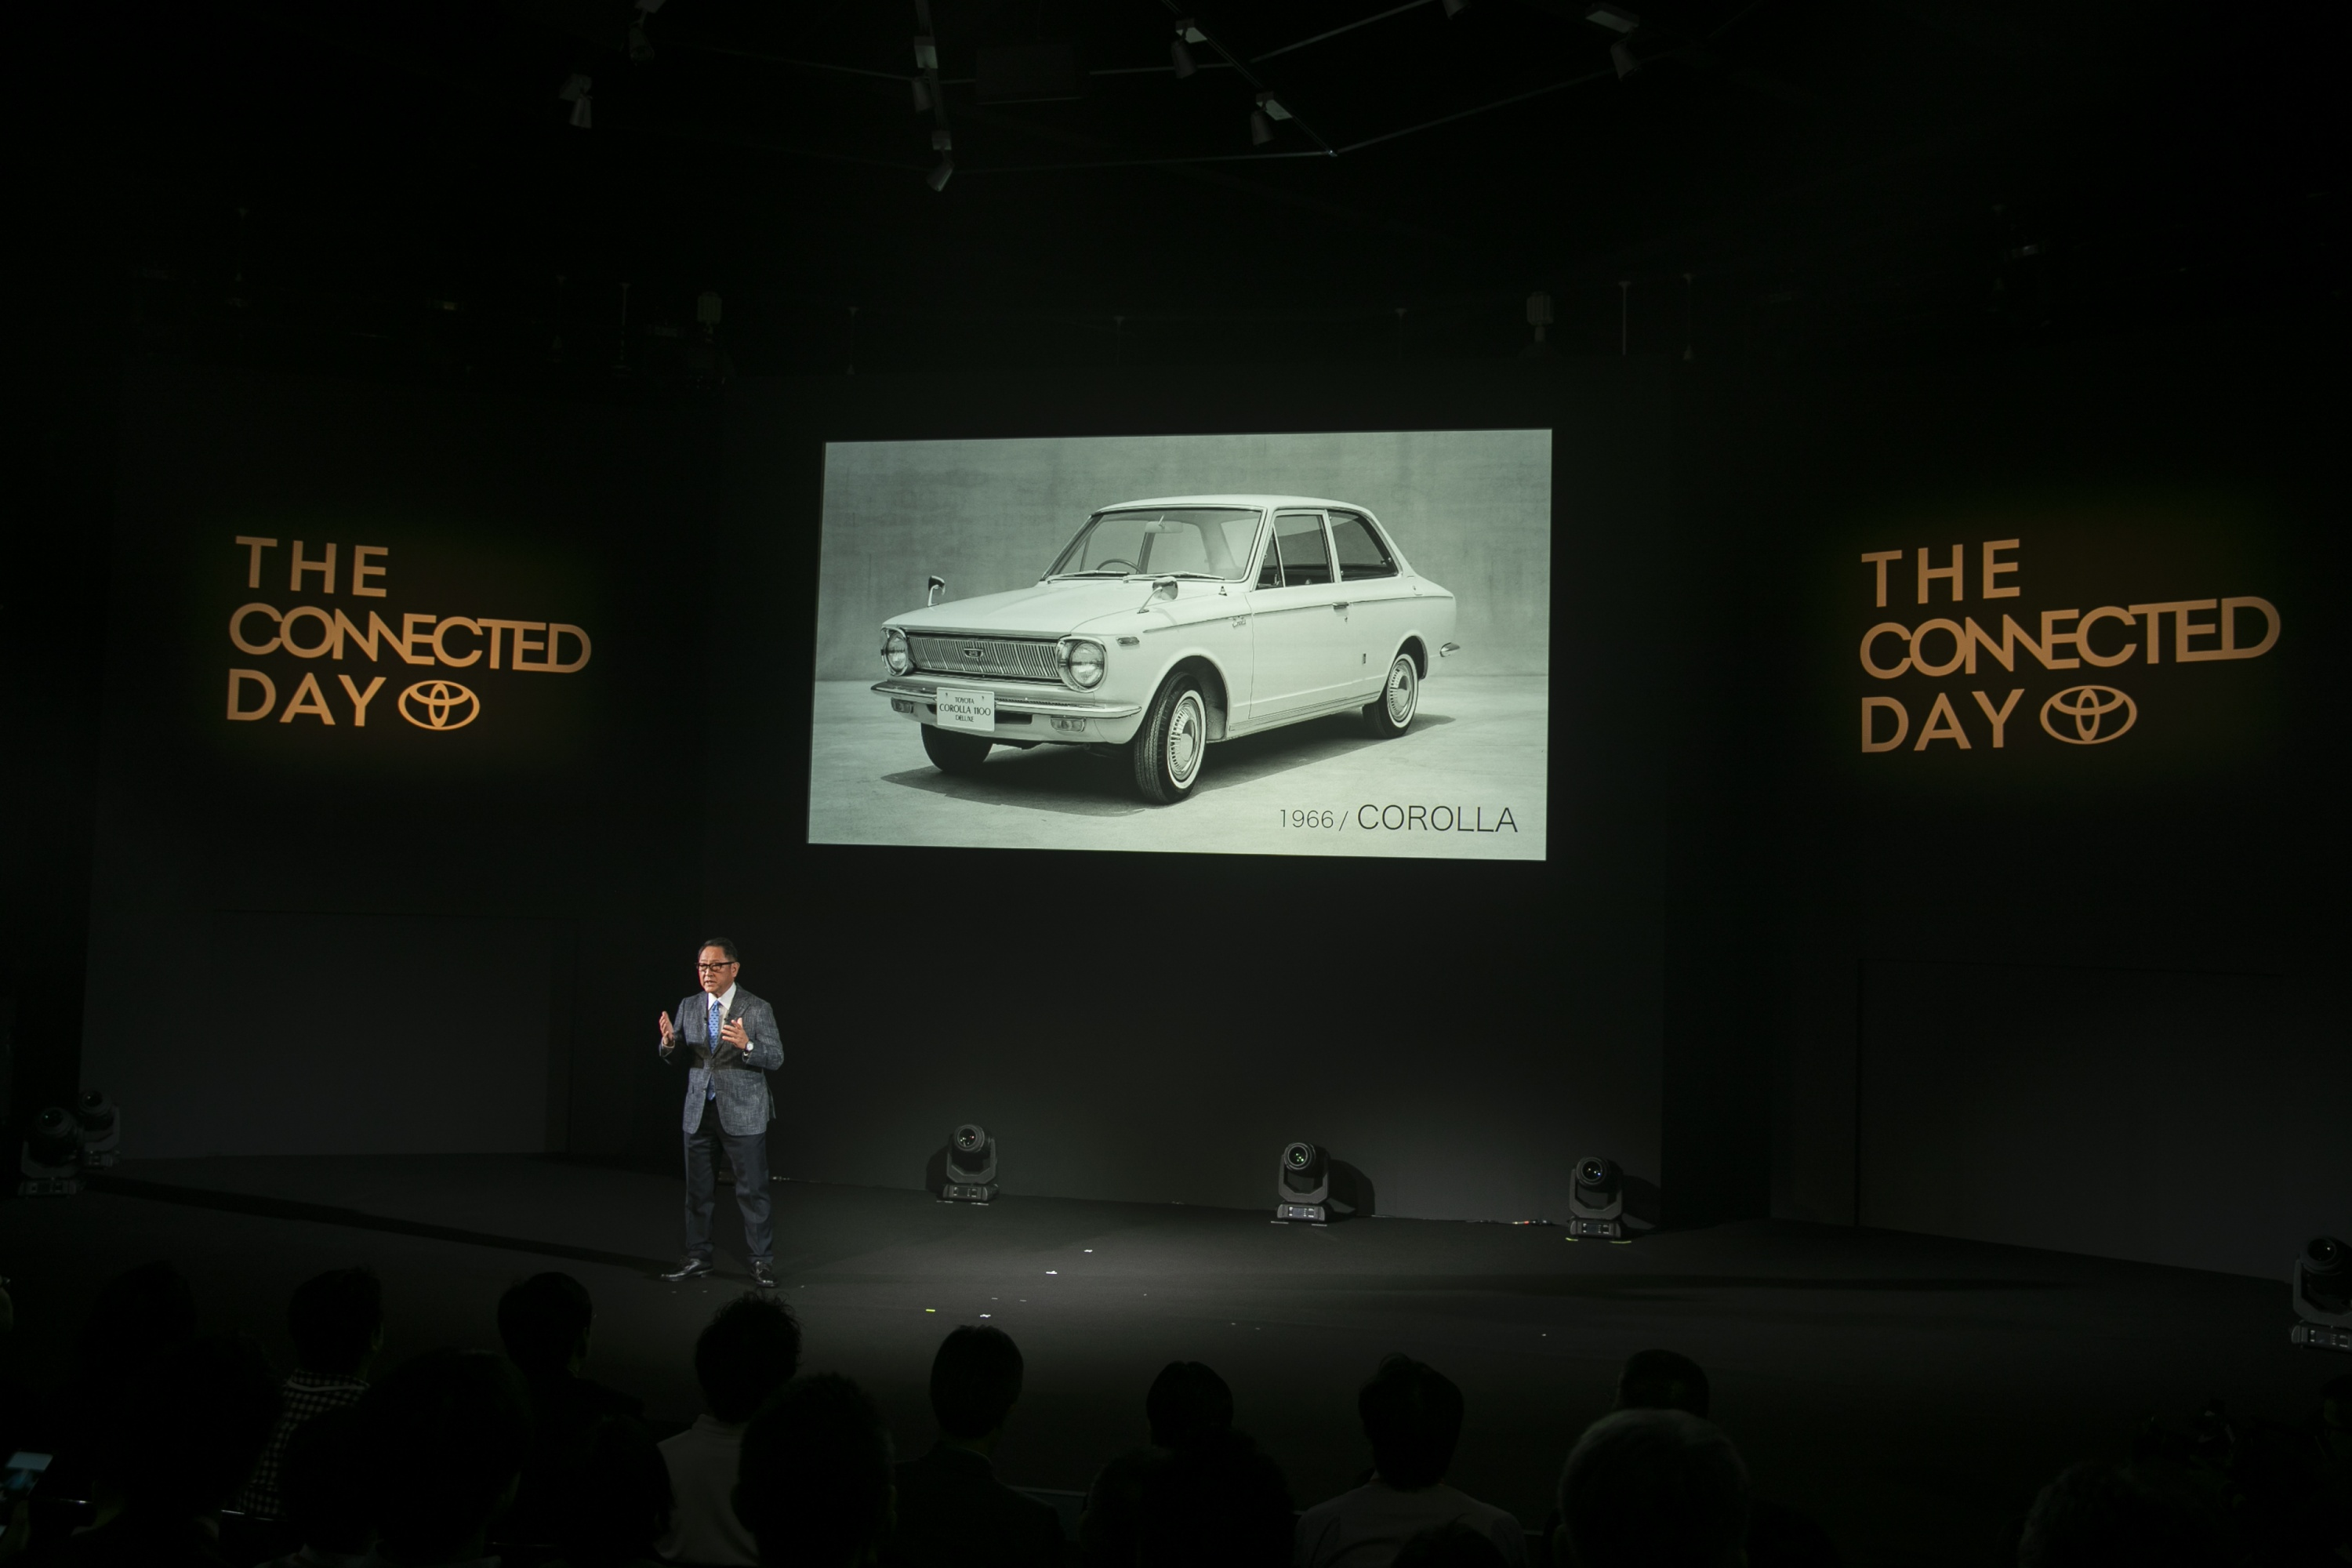 TheConnectedDay_03.jpg